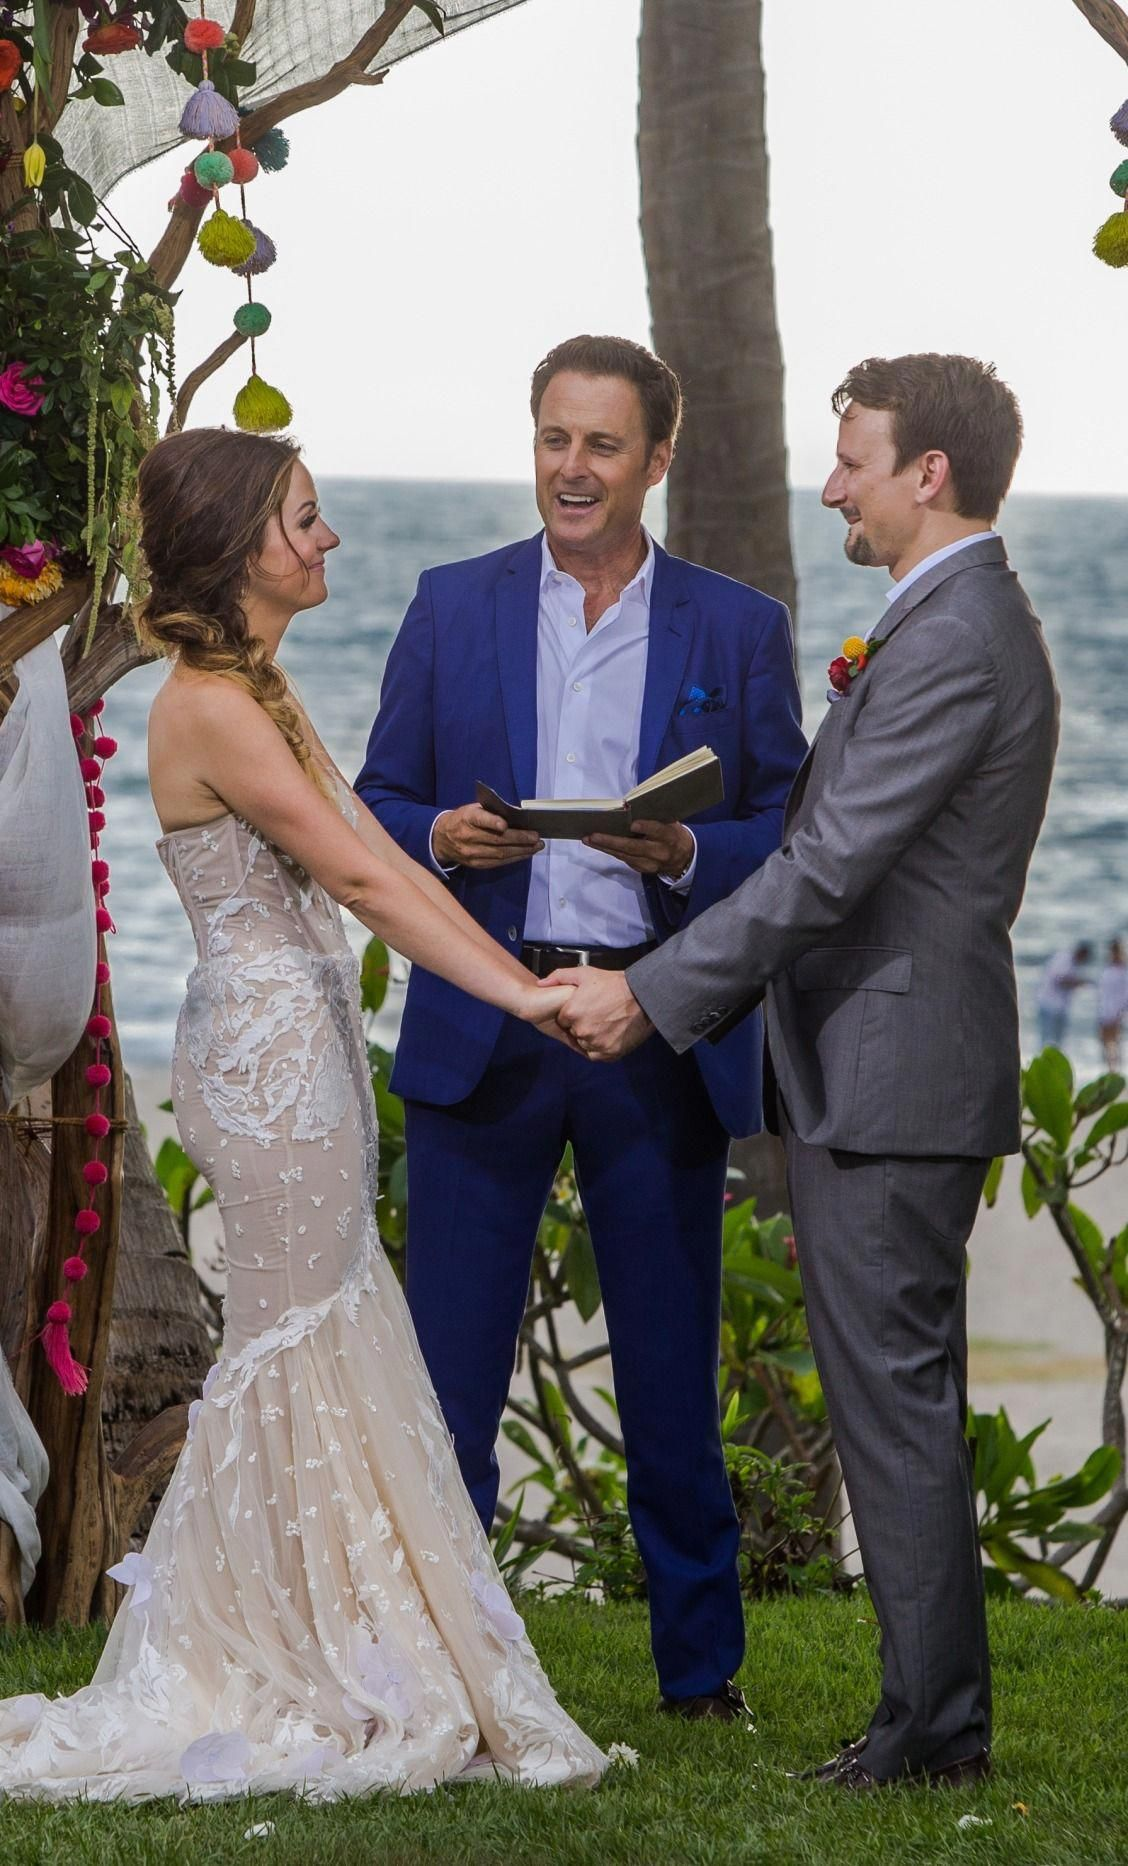 All About Bachelor In Paradise Star Carly Waddell's Idan